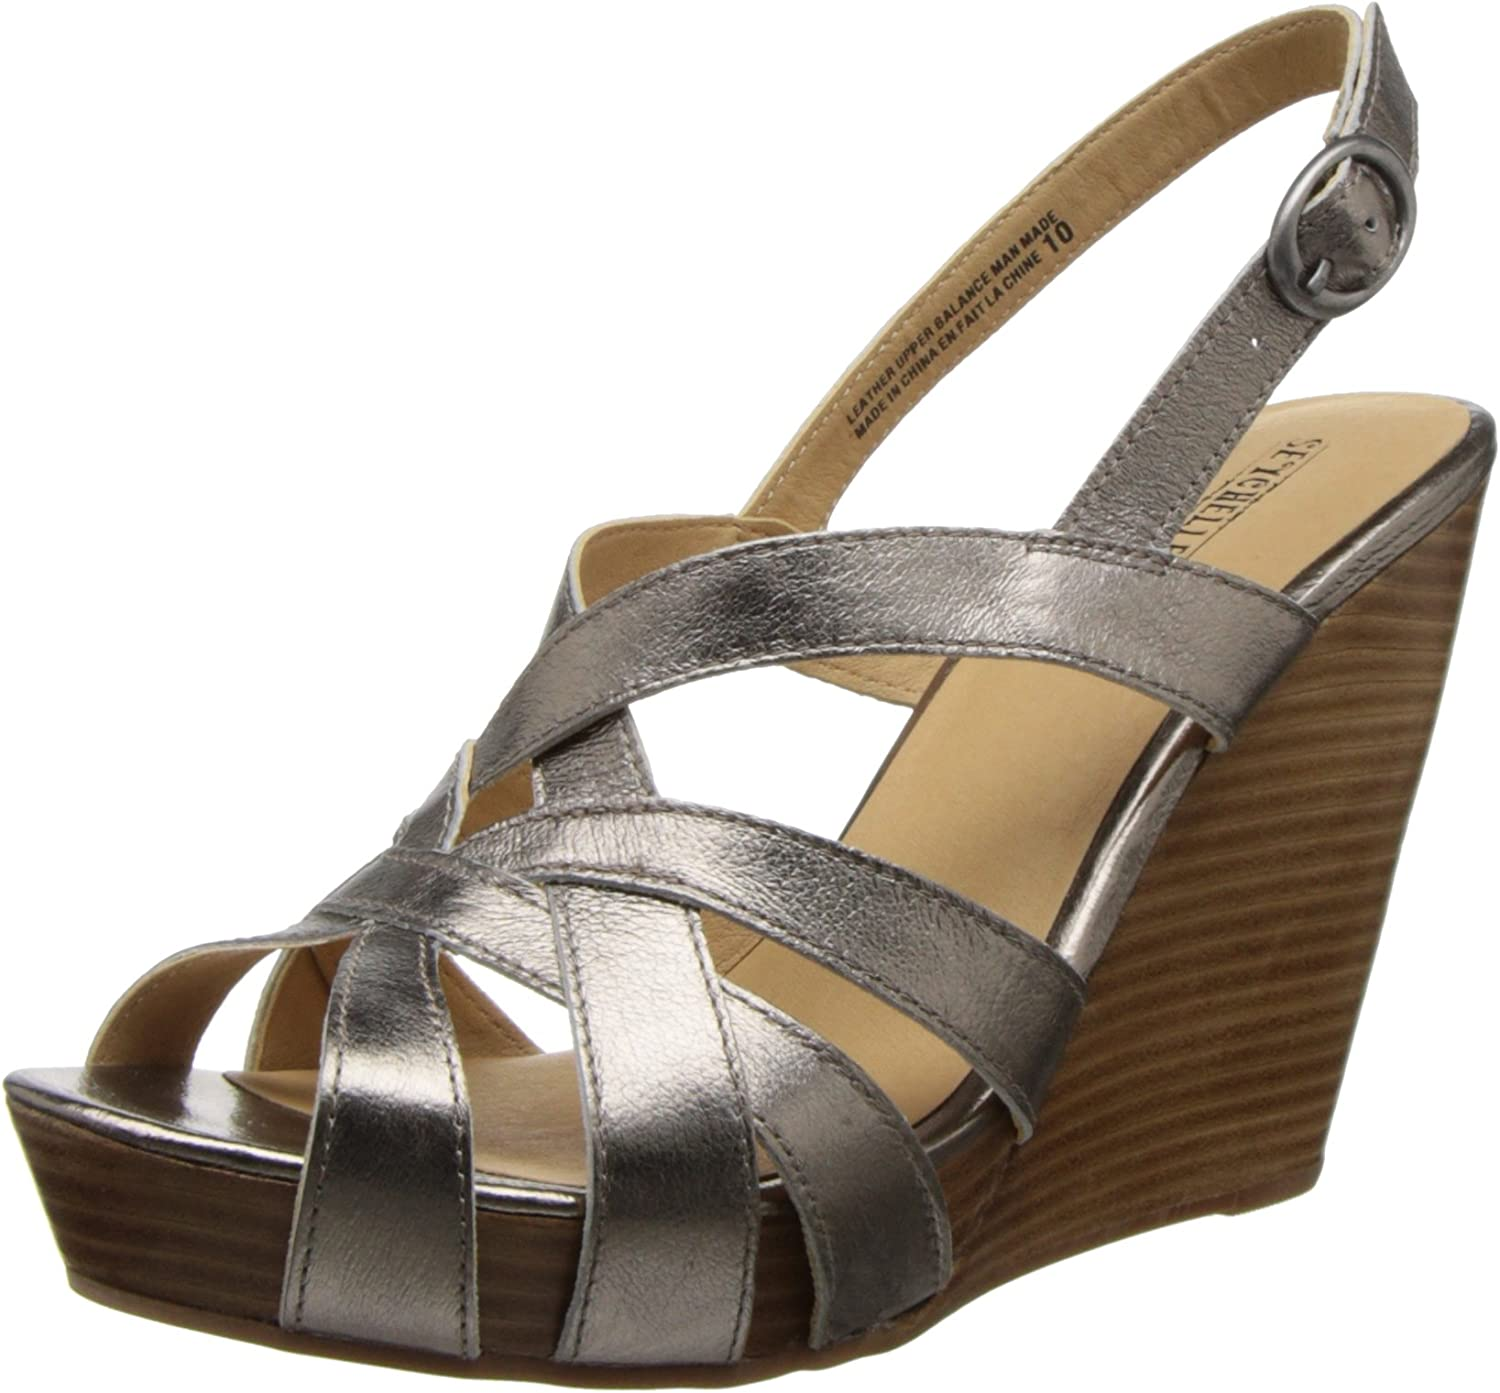 Seychelles Free Shipping New safety Women's Premiere Wedge Sandal